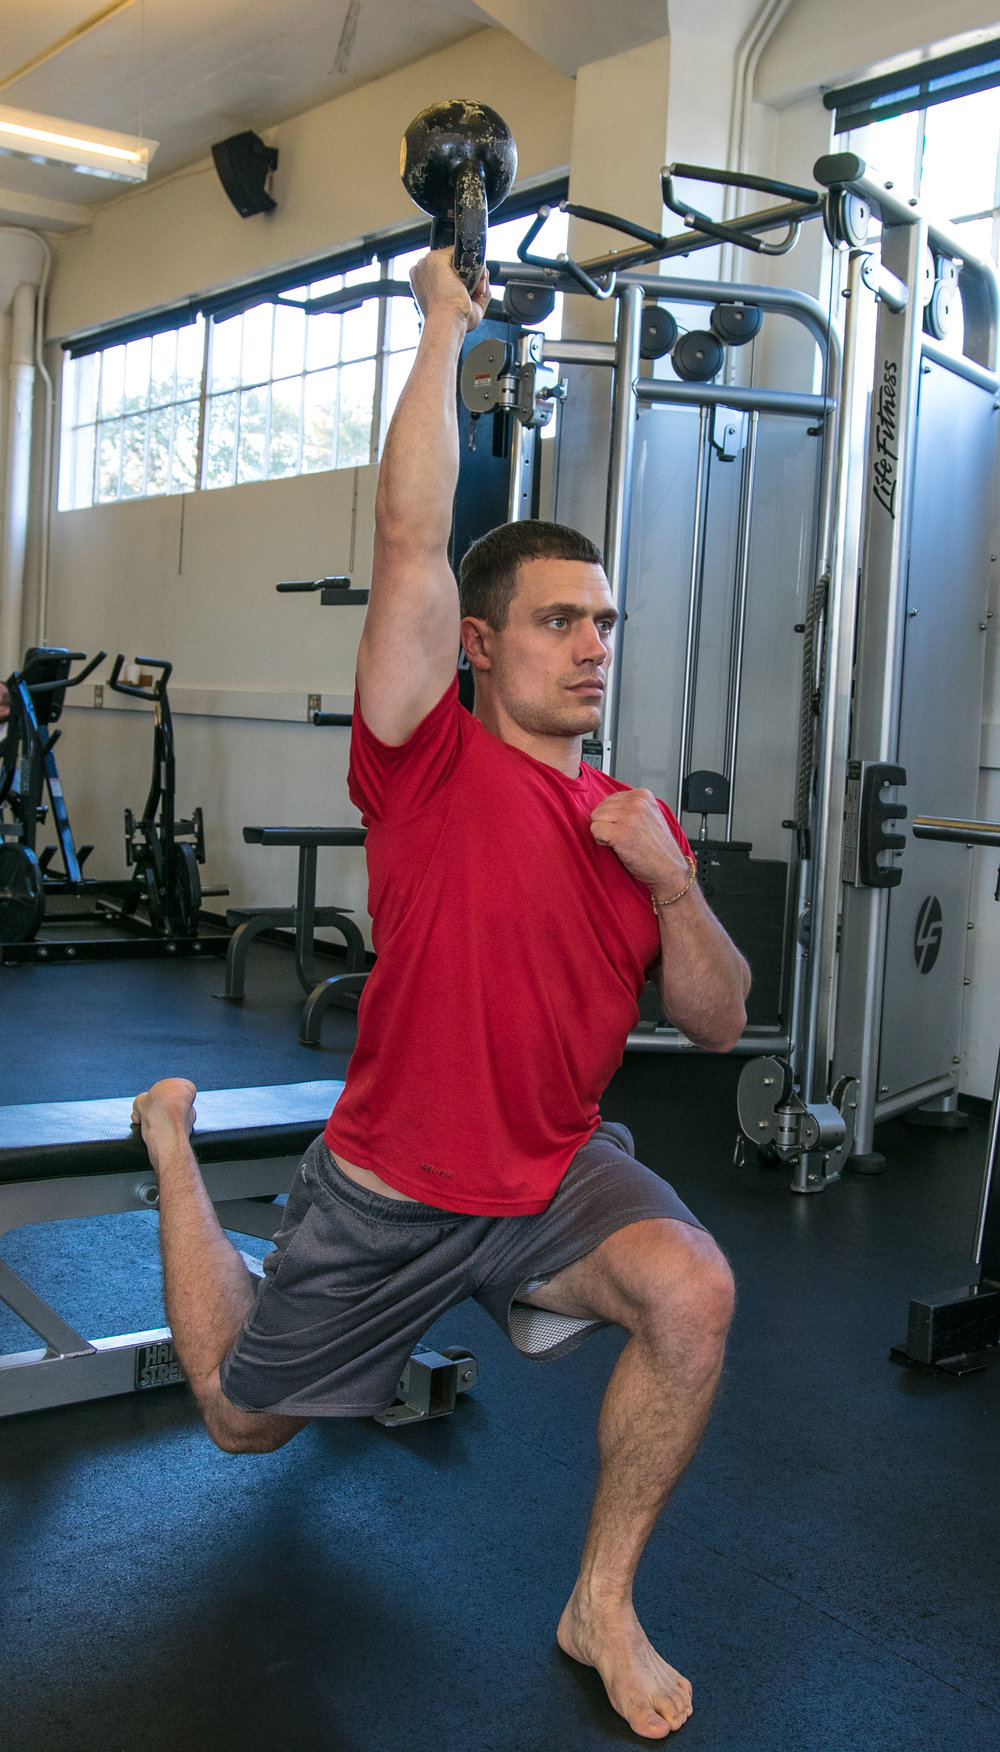 Tycho Bergquist bulgarian split squat overhead kettlebell hold institute of motion.jpg